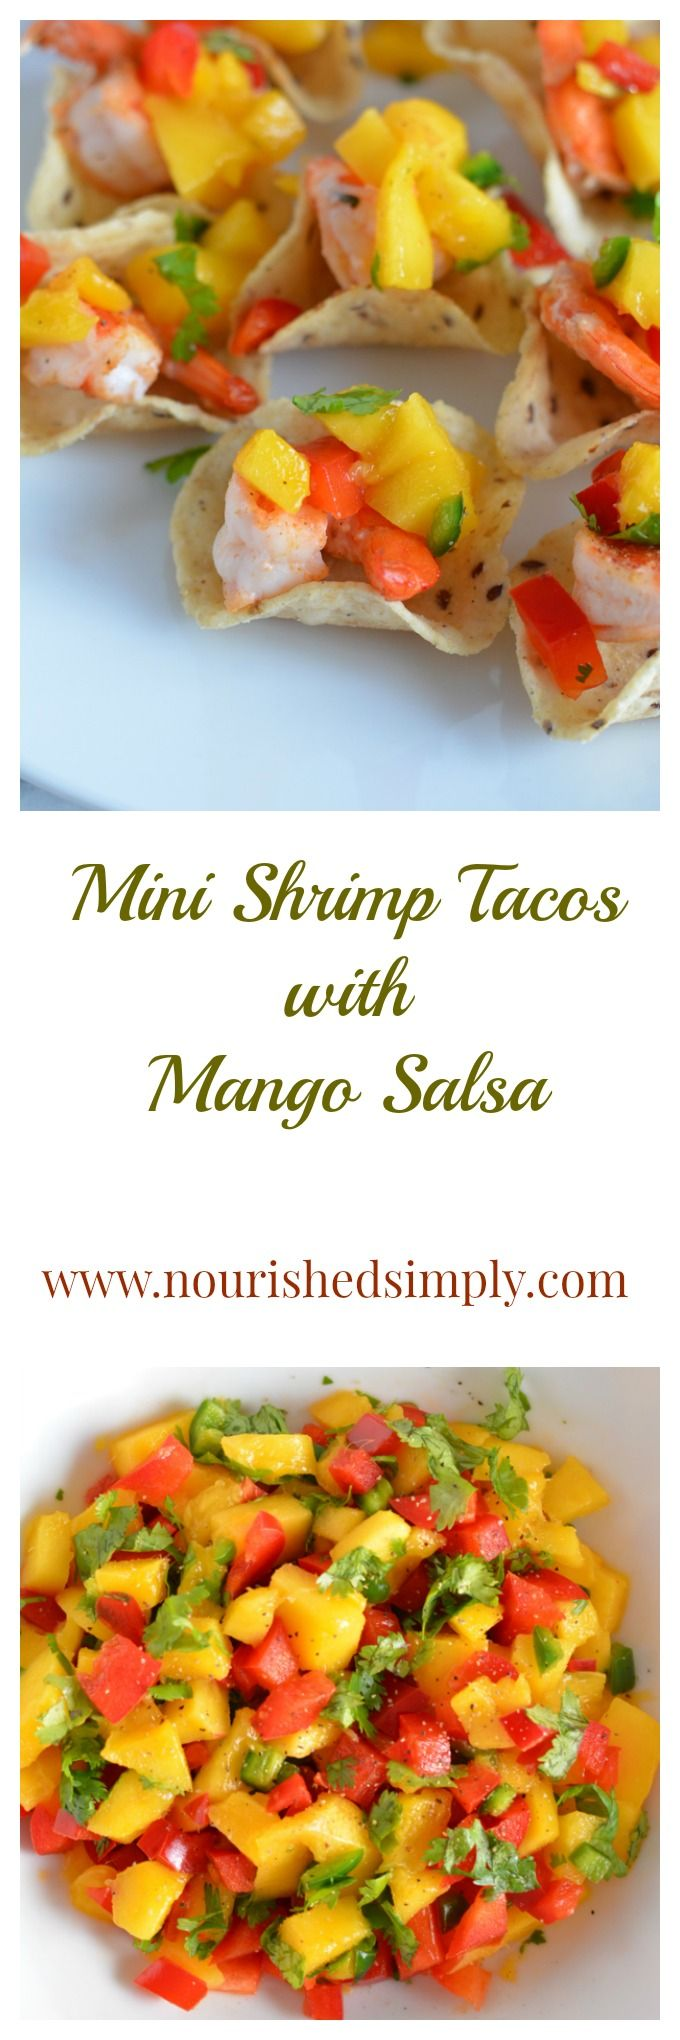 Mini Shrimp Tacos with Mango Salsa is a perfect summer snack to enjoy as a snack or party appetizer.